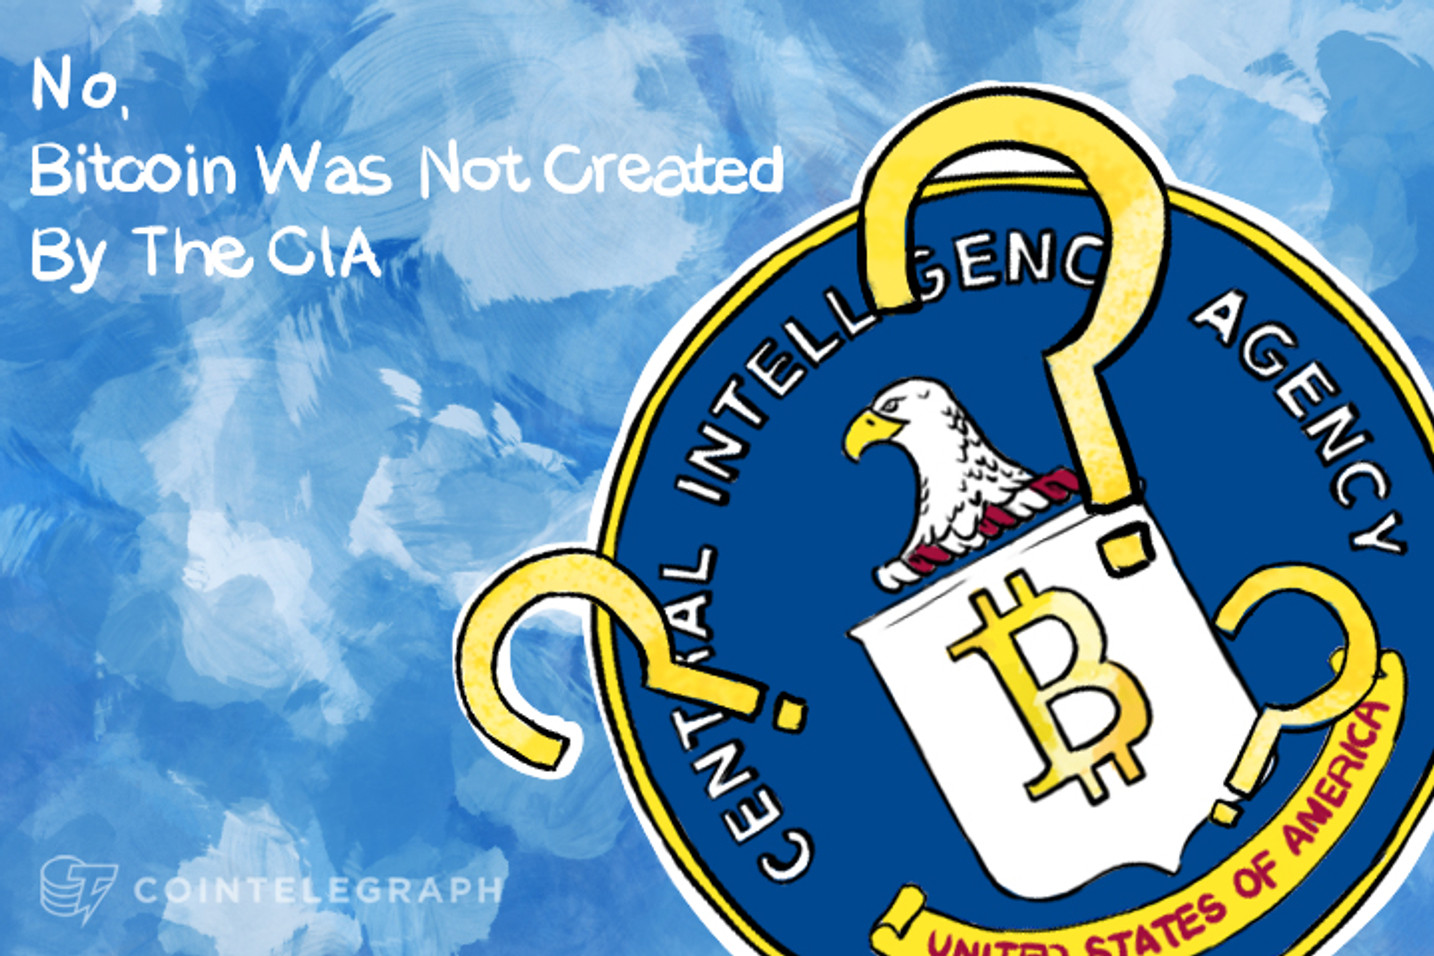 Op-Ed: No, Bitcoin Was Not Created By The CIA